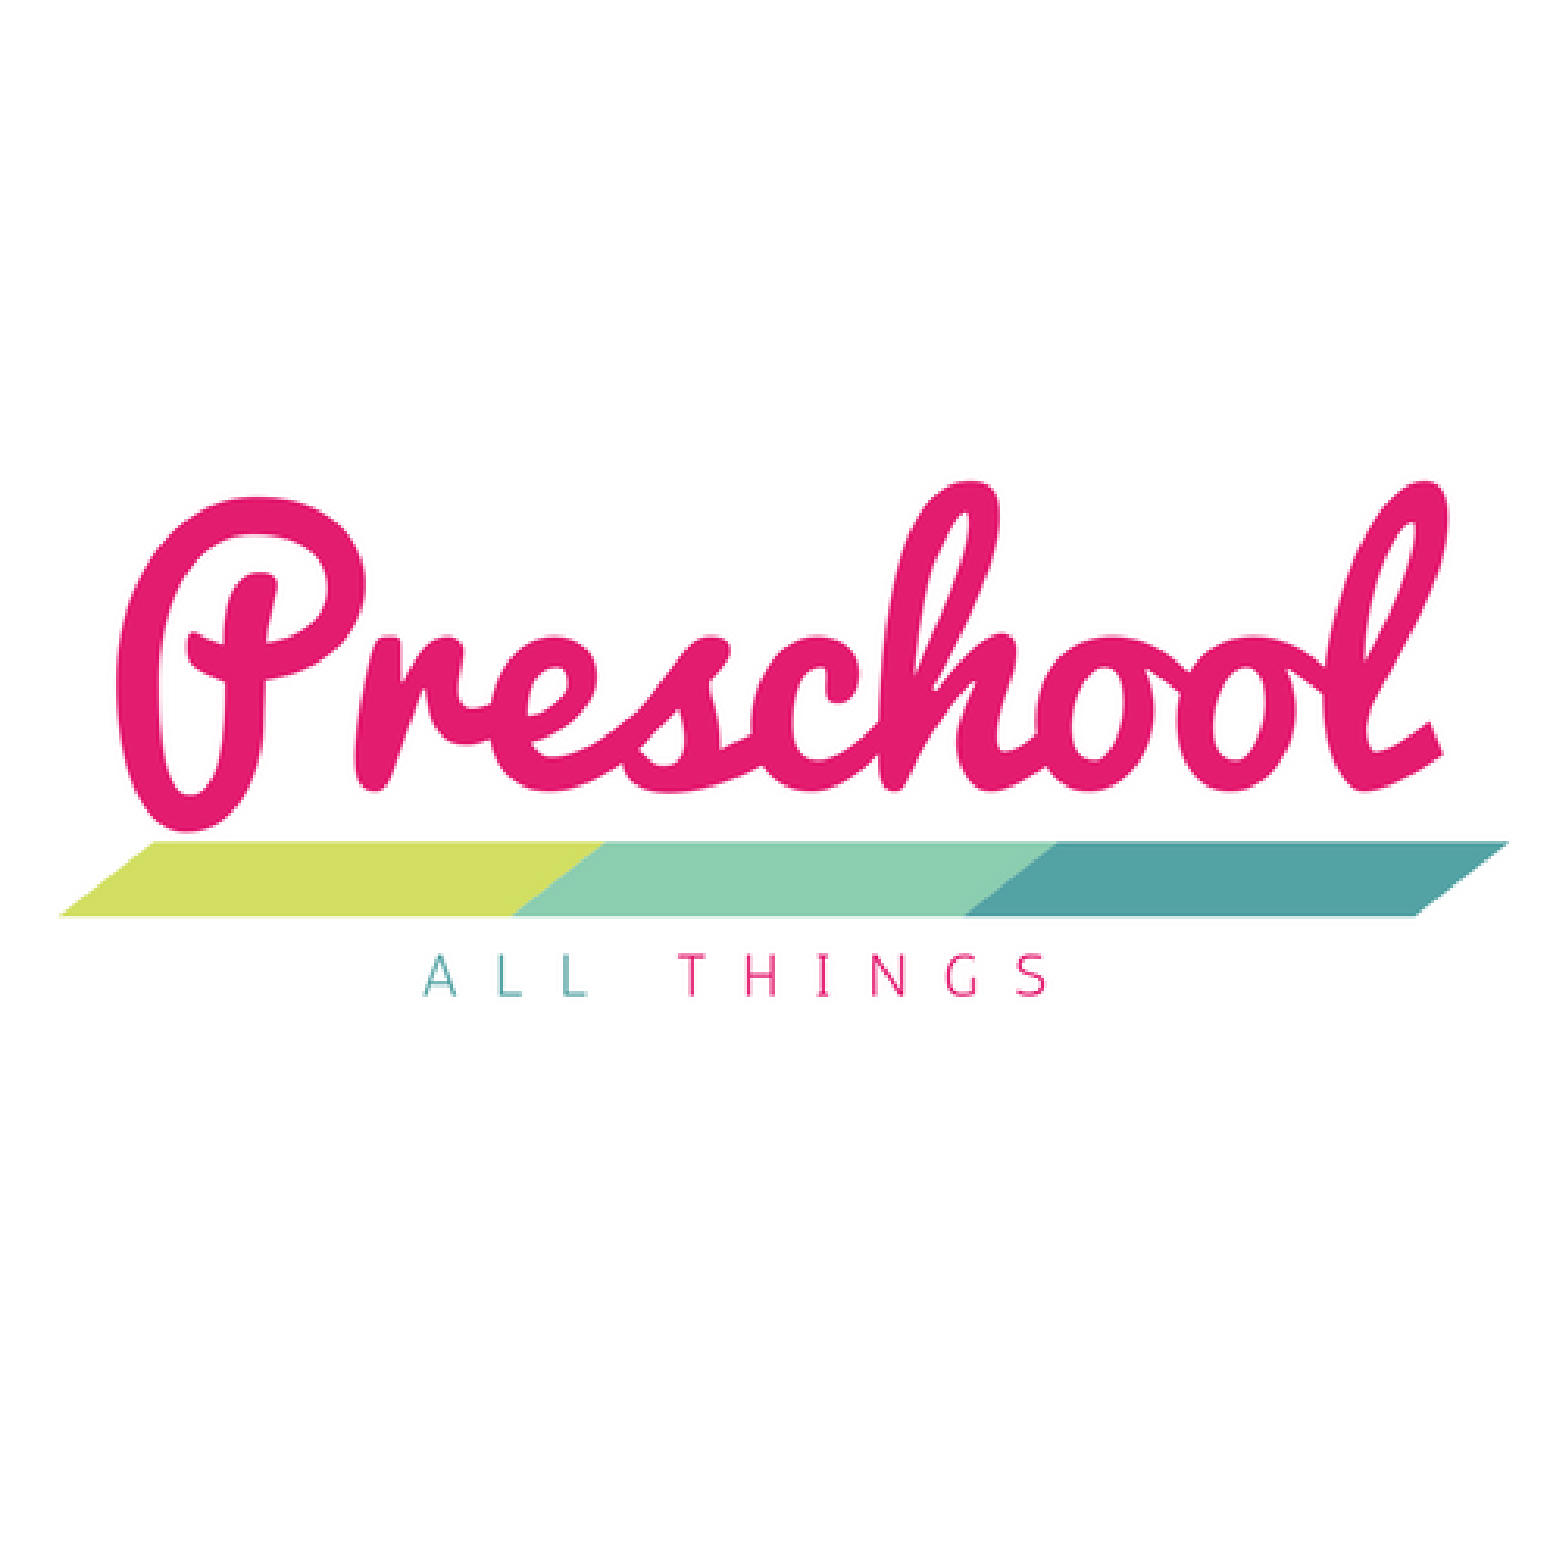 Preschool All Things